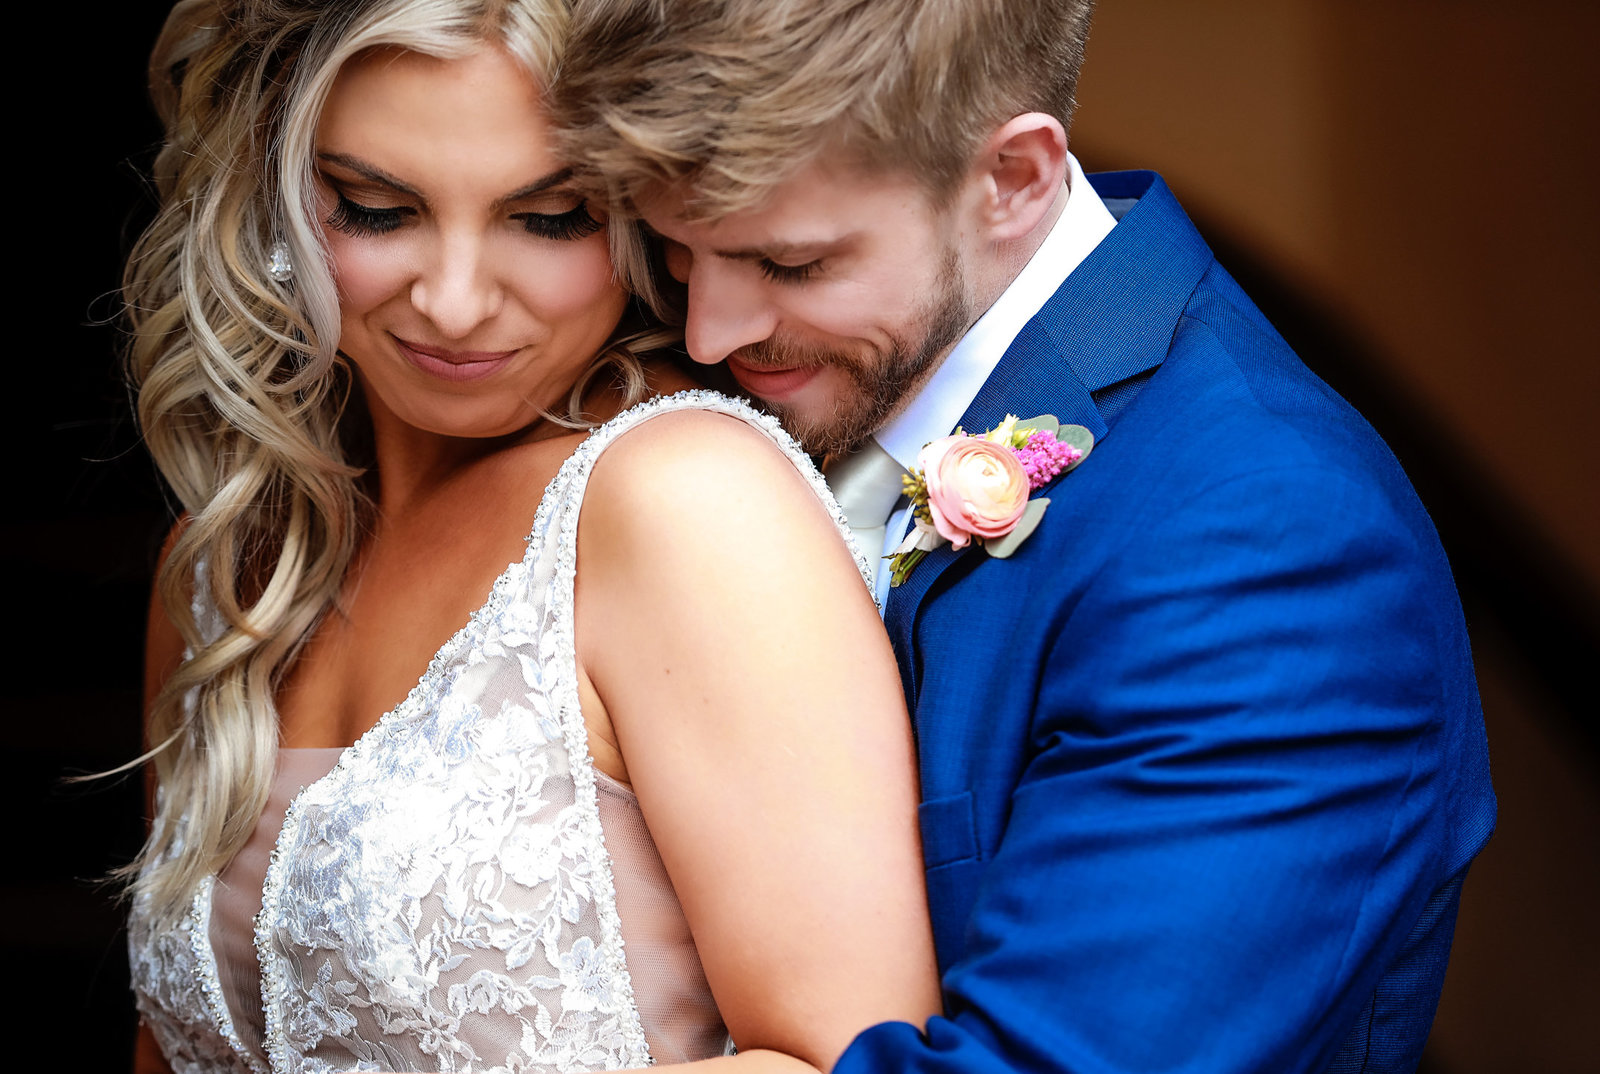 Sherri Barber is a Cincinnati Wedding Photographer who specializes in shooting both digital photography to create elegant and authentic wedding photography in Ohio, Kentucky, and worldwide